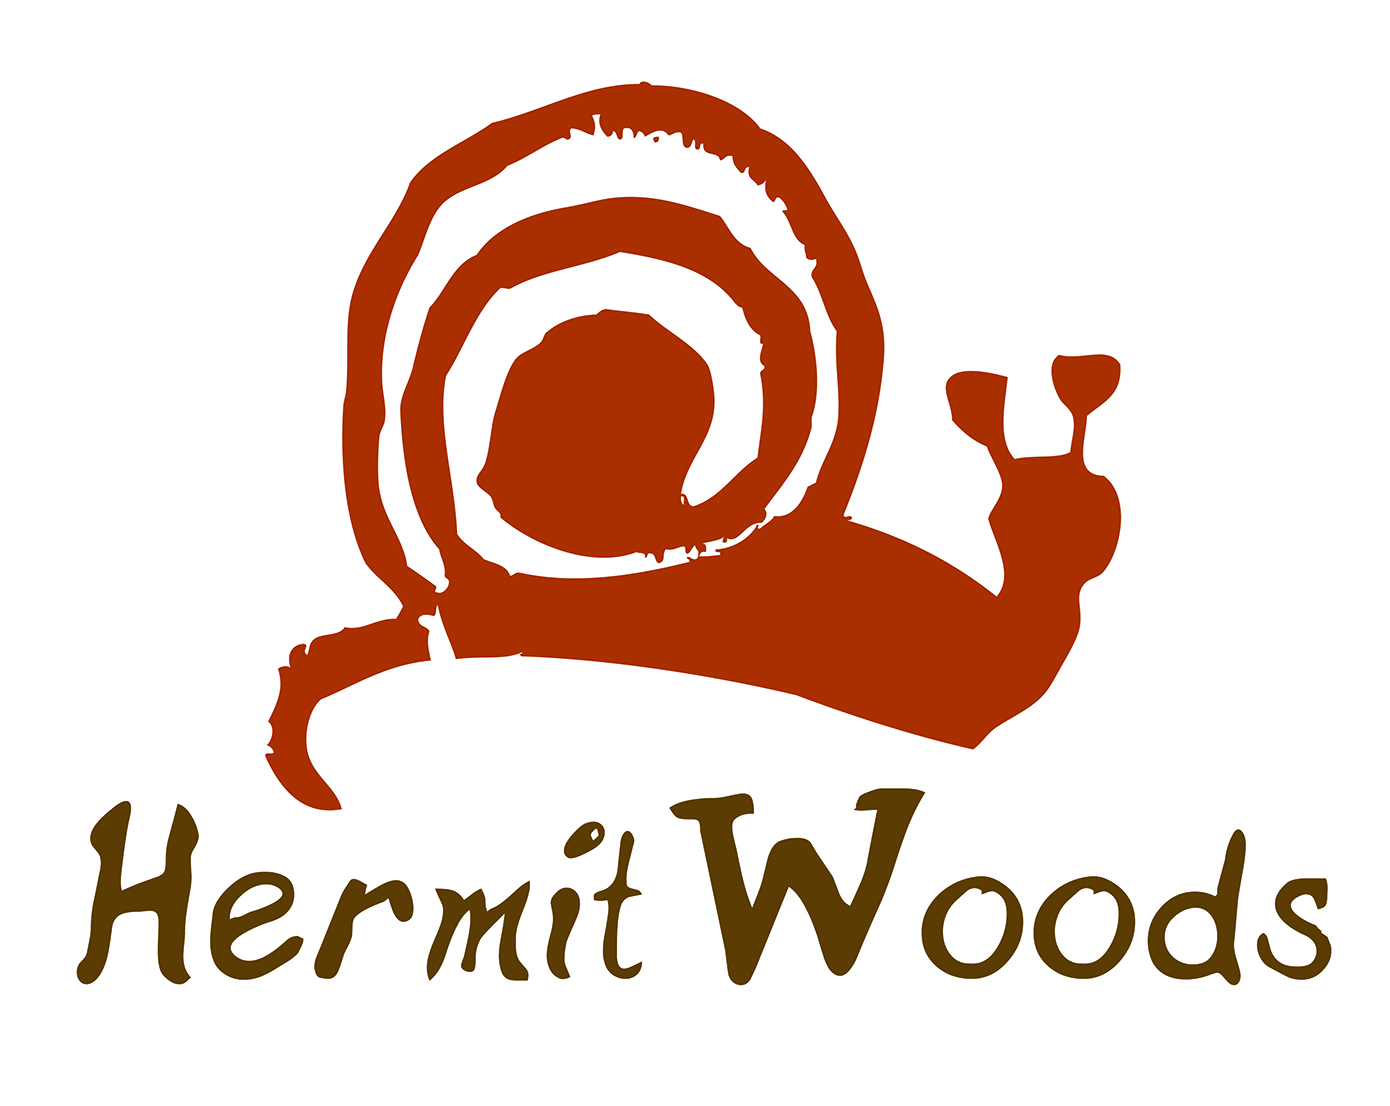 Hermit Woods Winery & Deli